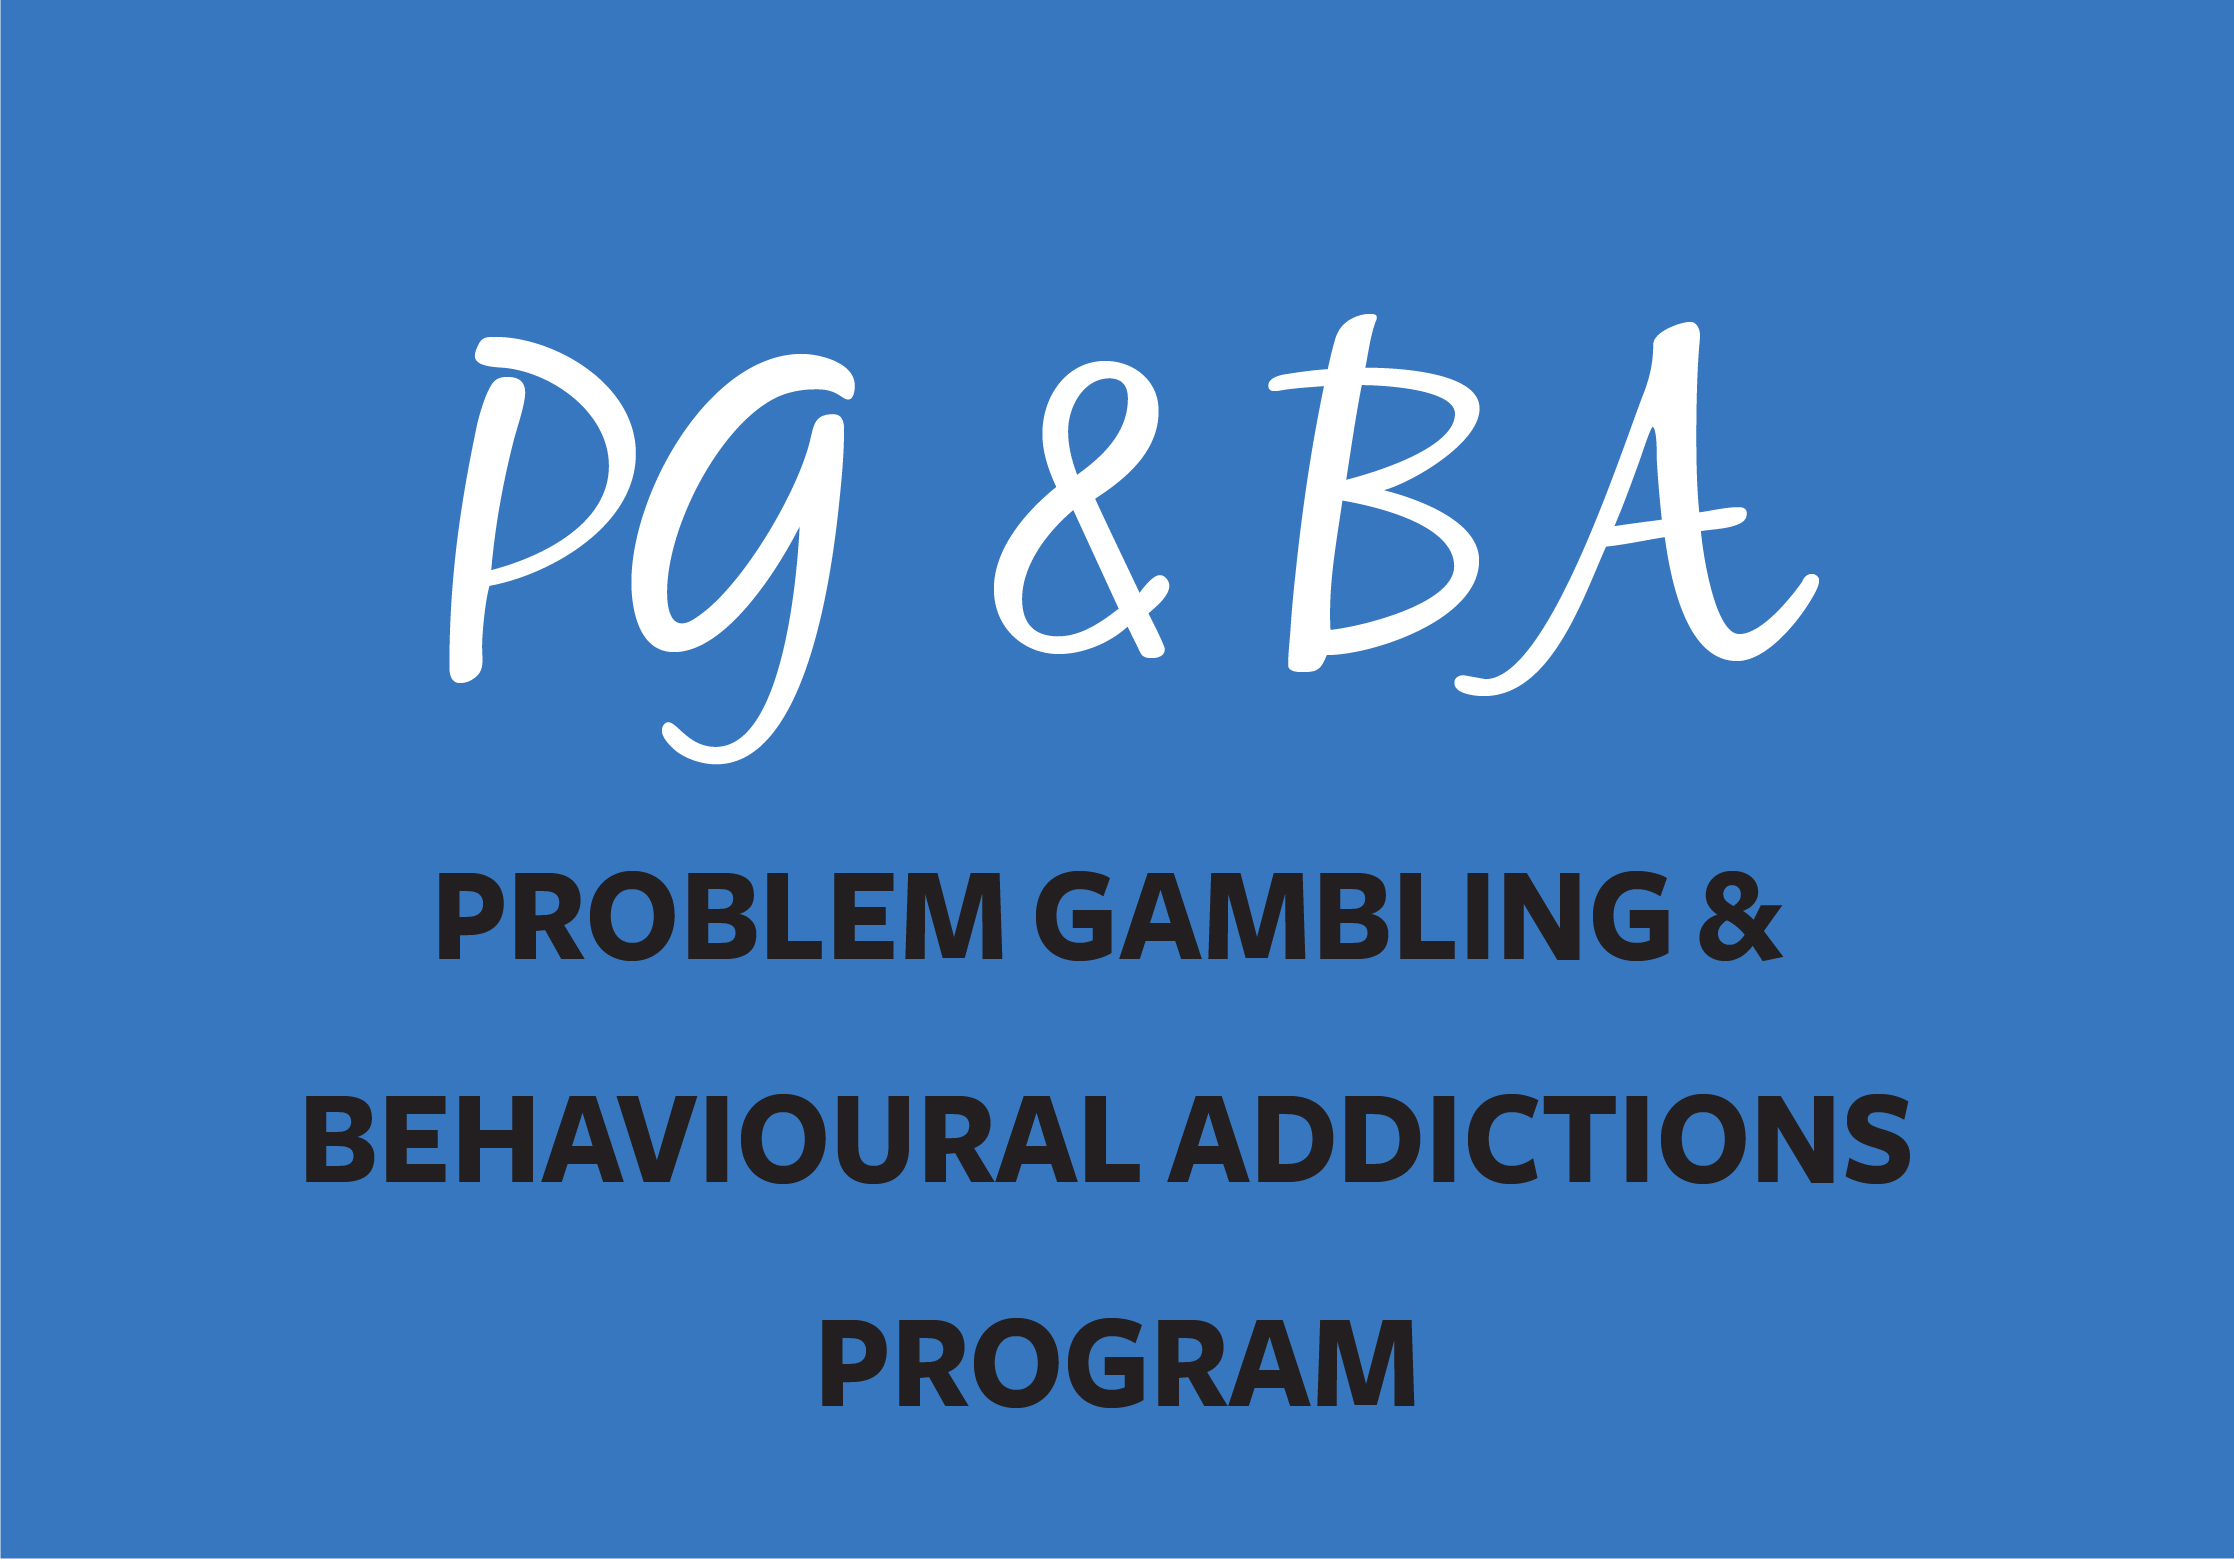 Link to Problem Gambling & Behavioural Addictions Program page